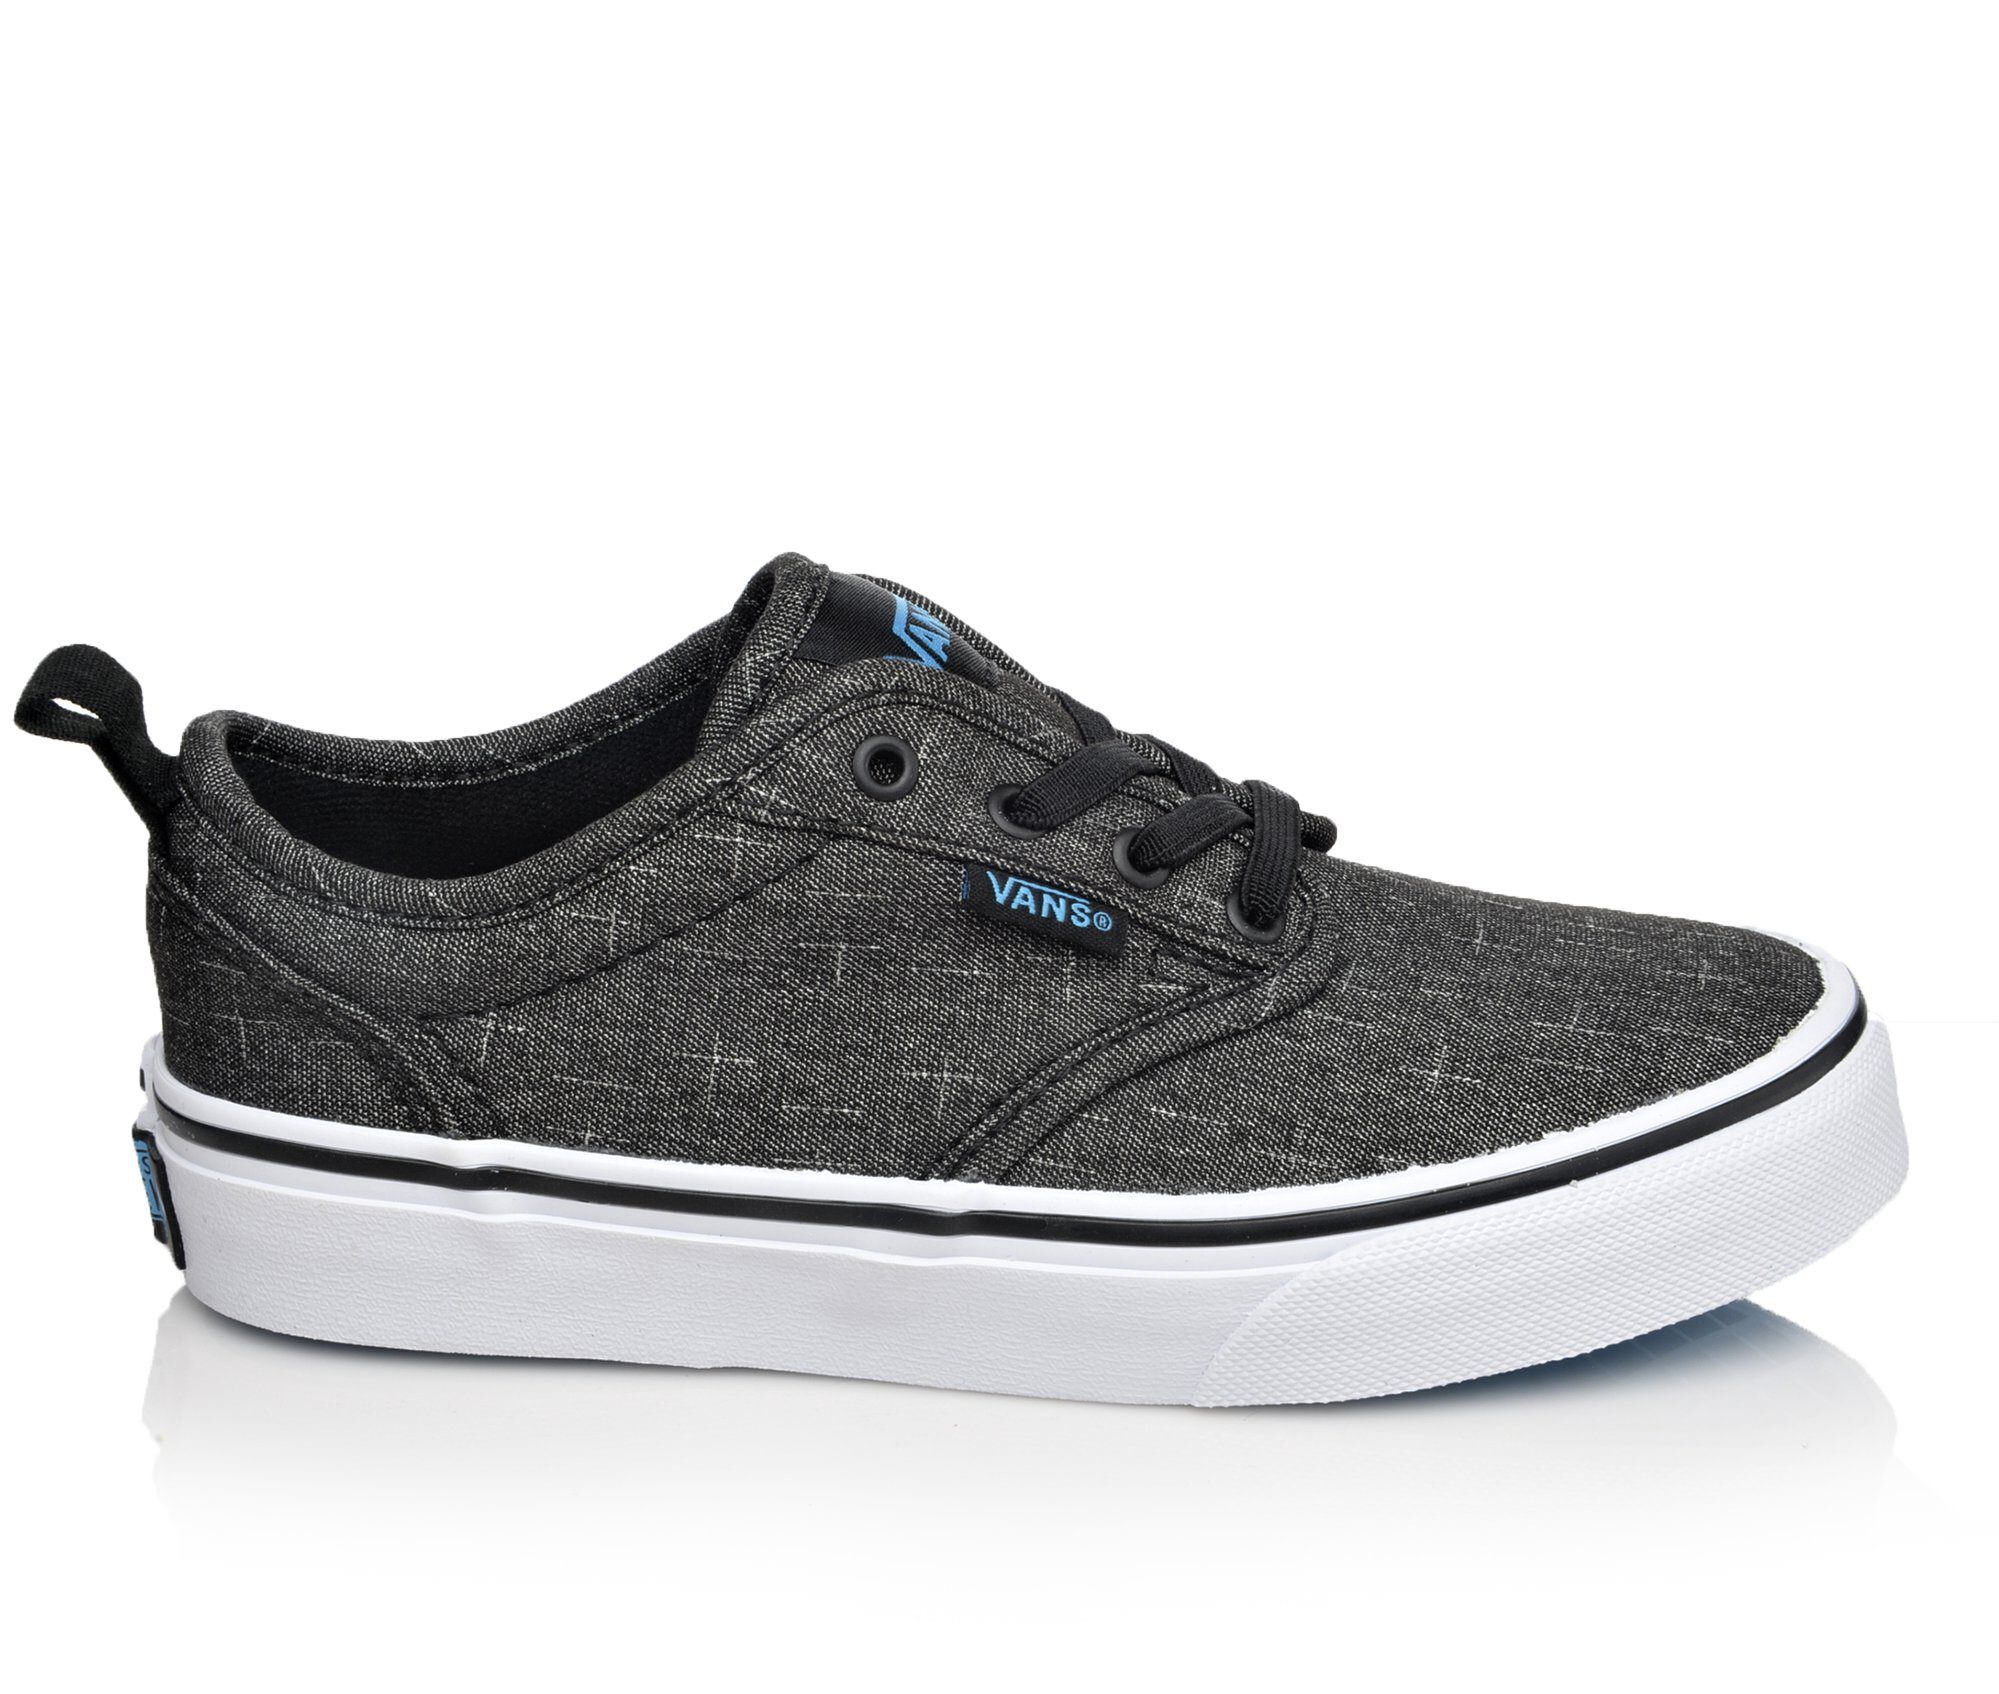 vans shoes black and white boys. shoes boys vans black and white